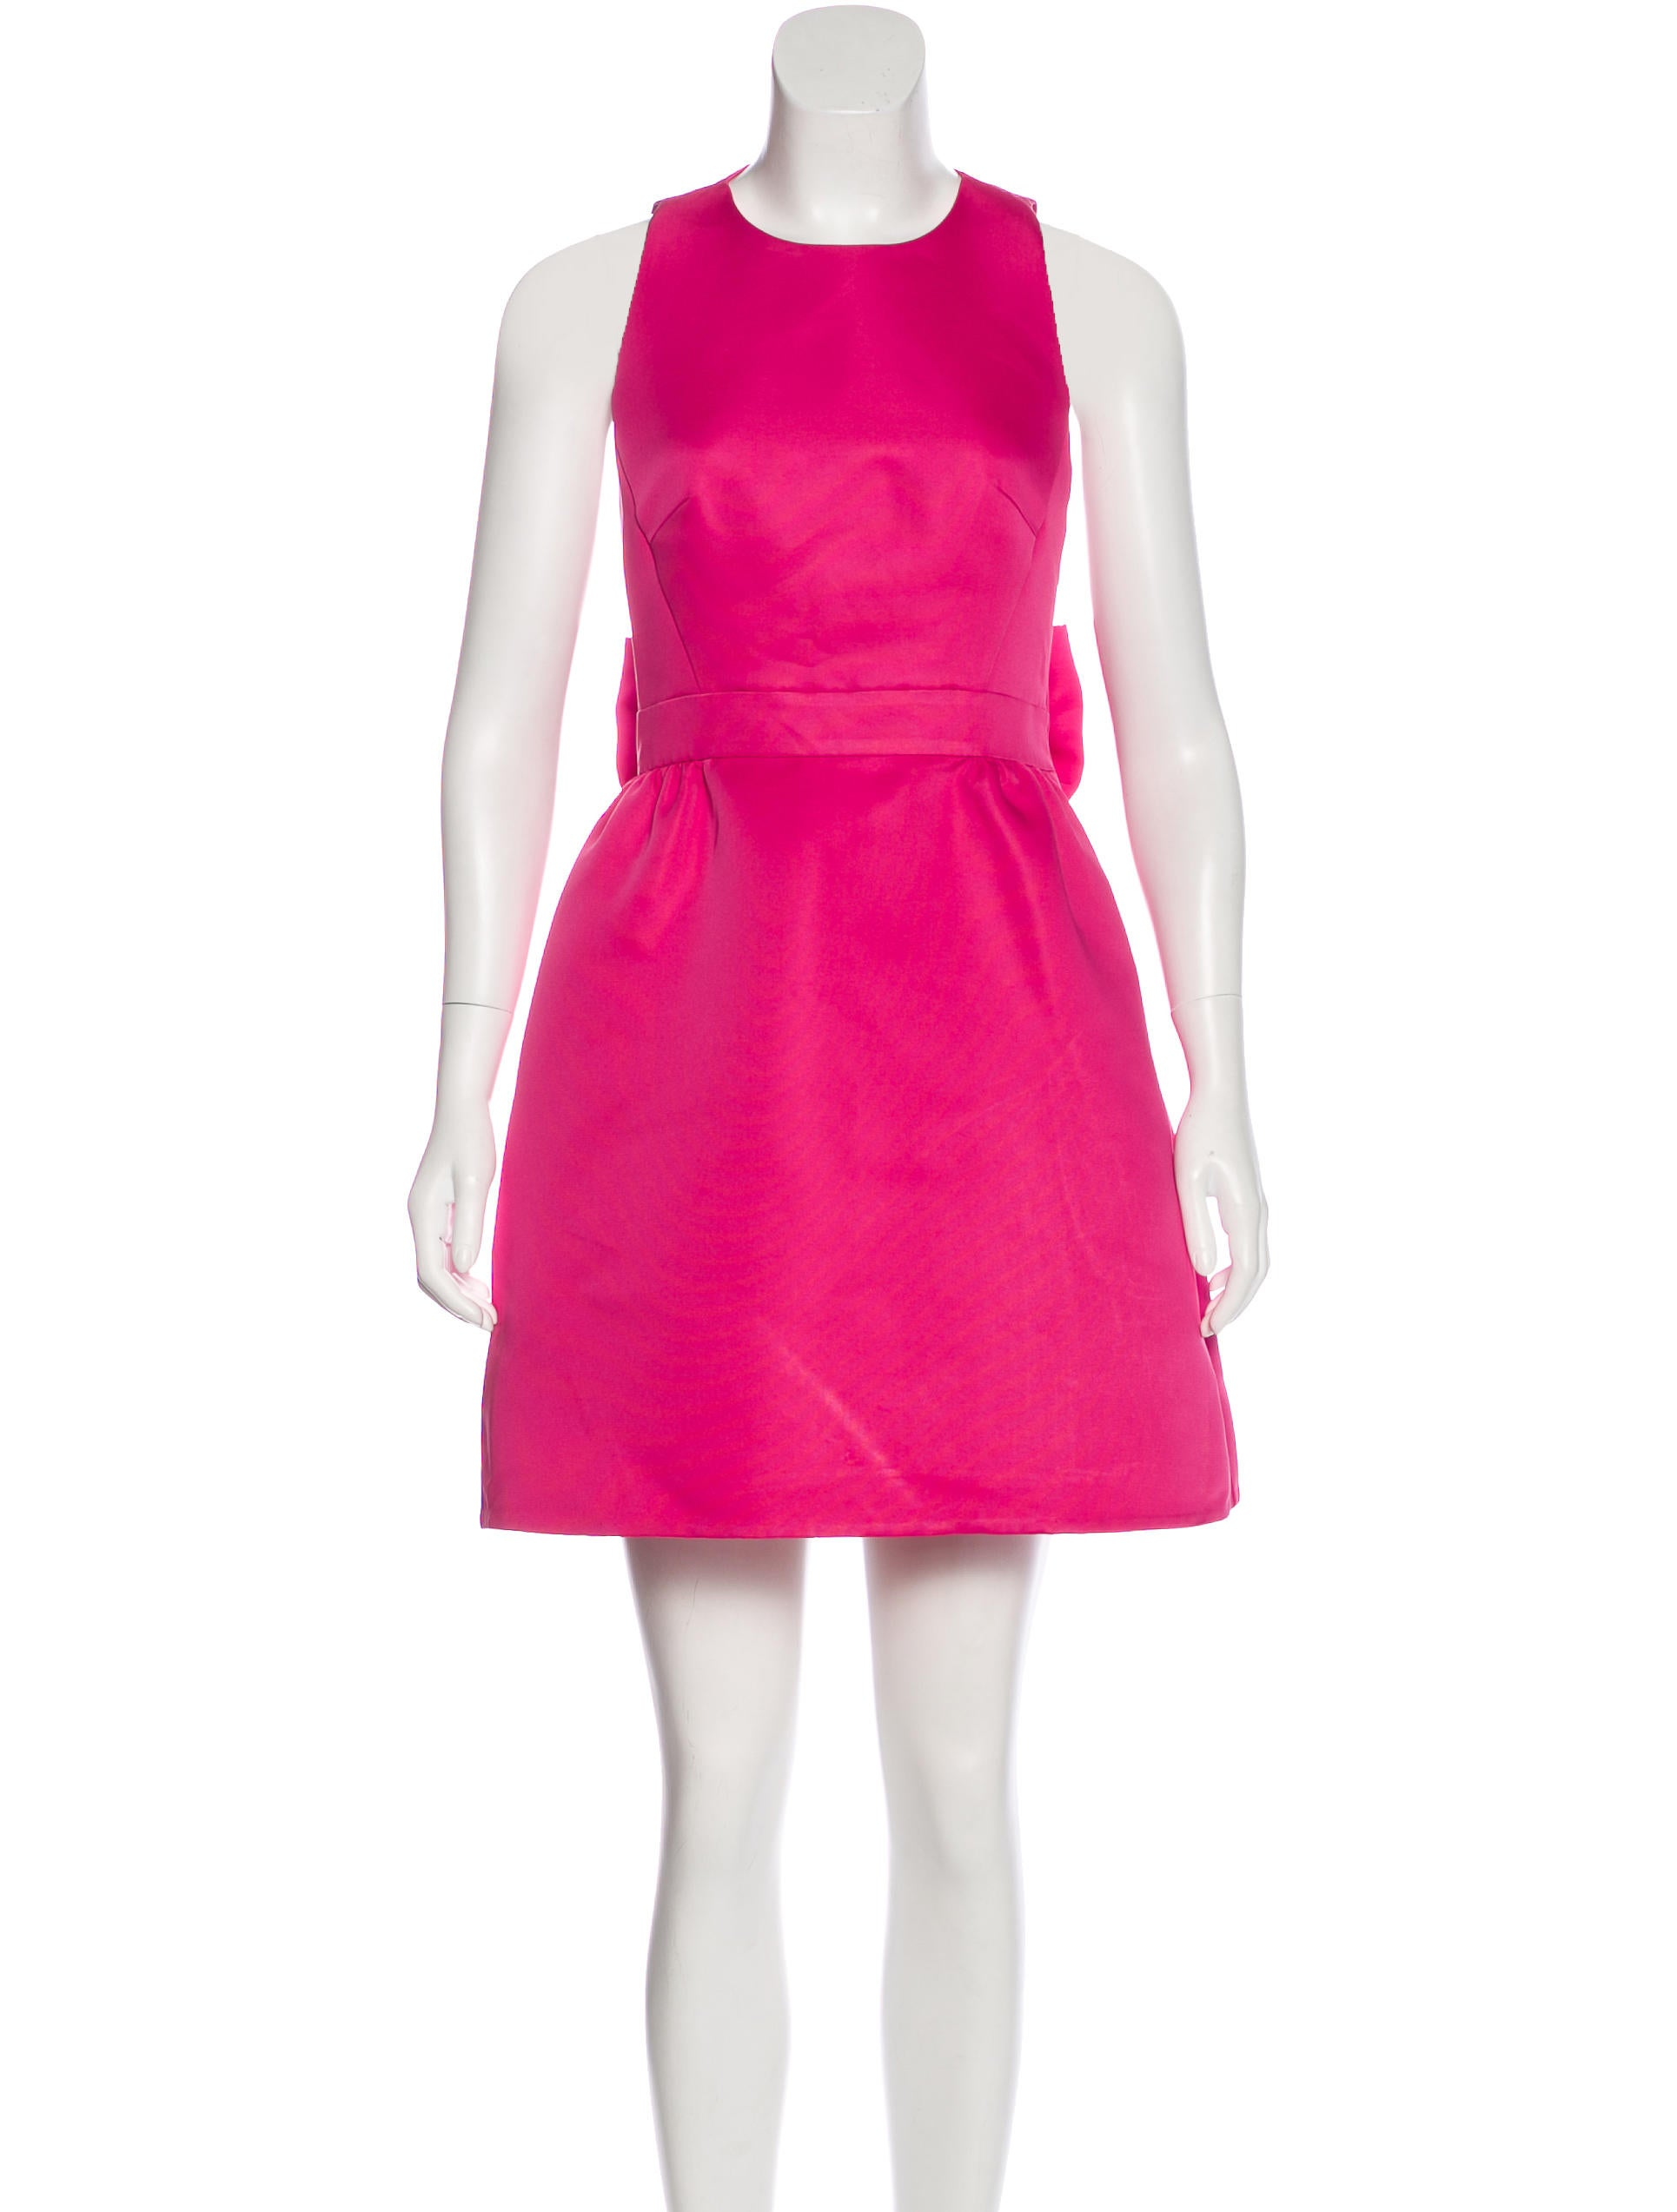 917c8dfefbb ... Kate Spade New York Bow Accented A-Line Dress. Bow Accented A-Line Dress